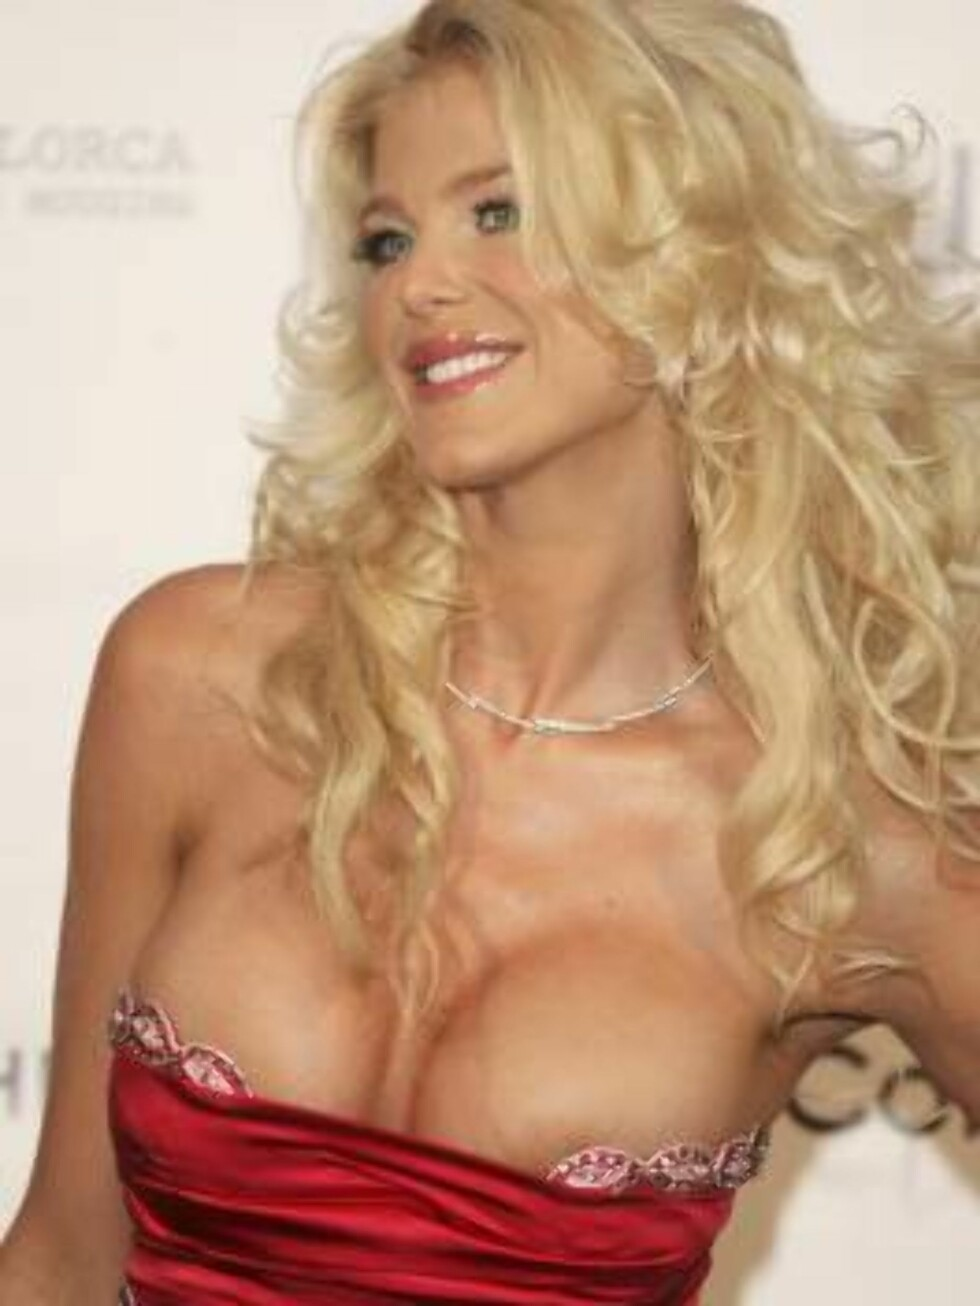 """CANNES, FRANCE - MAY 25:  Model and actress Victoria Silvstedt arrives at """"Cinema Against AIDS 2006"""", the annual event in aid of amfAR (American Foundation for AIDS Research) at Le Moulin de Mougins during the 59th International Cannes Film Festival May 2 Foto: All Over Press"""